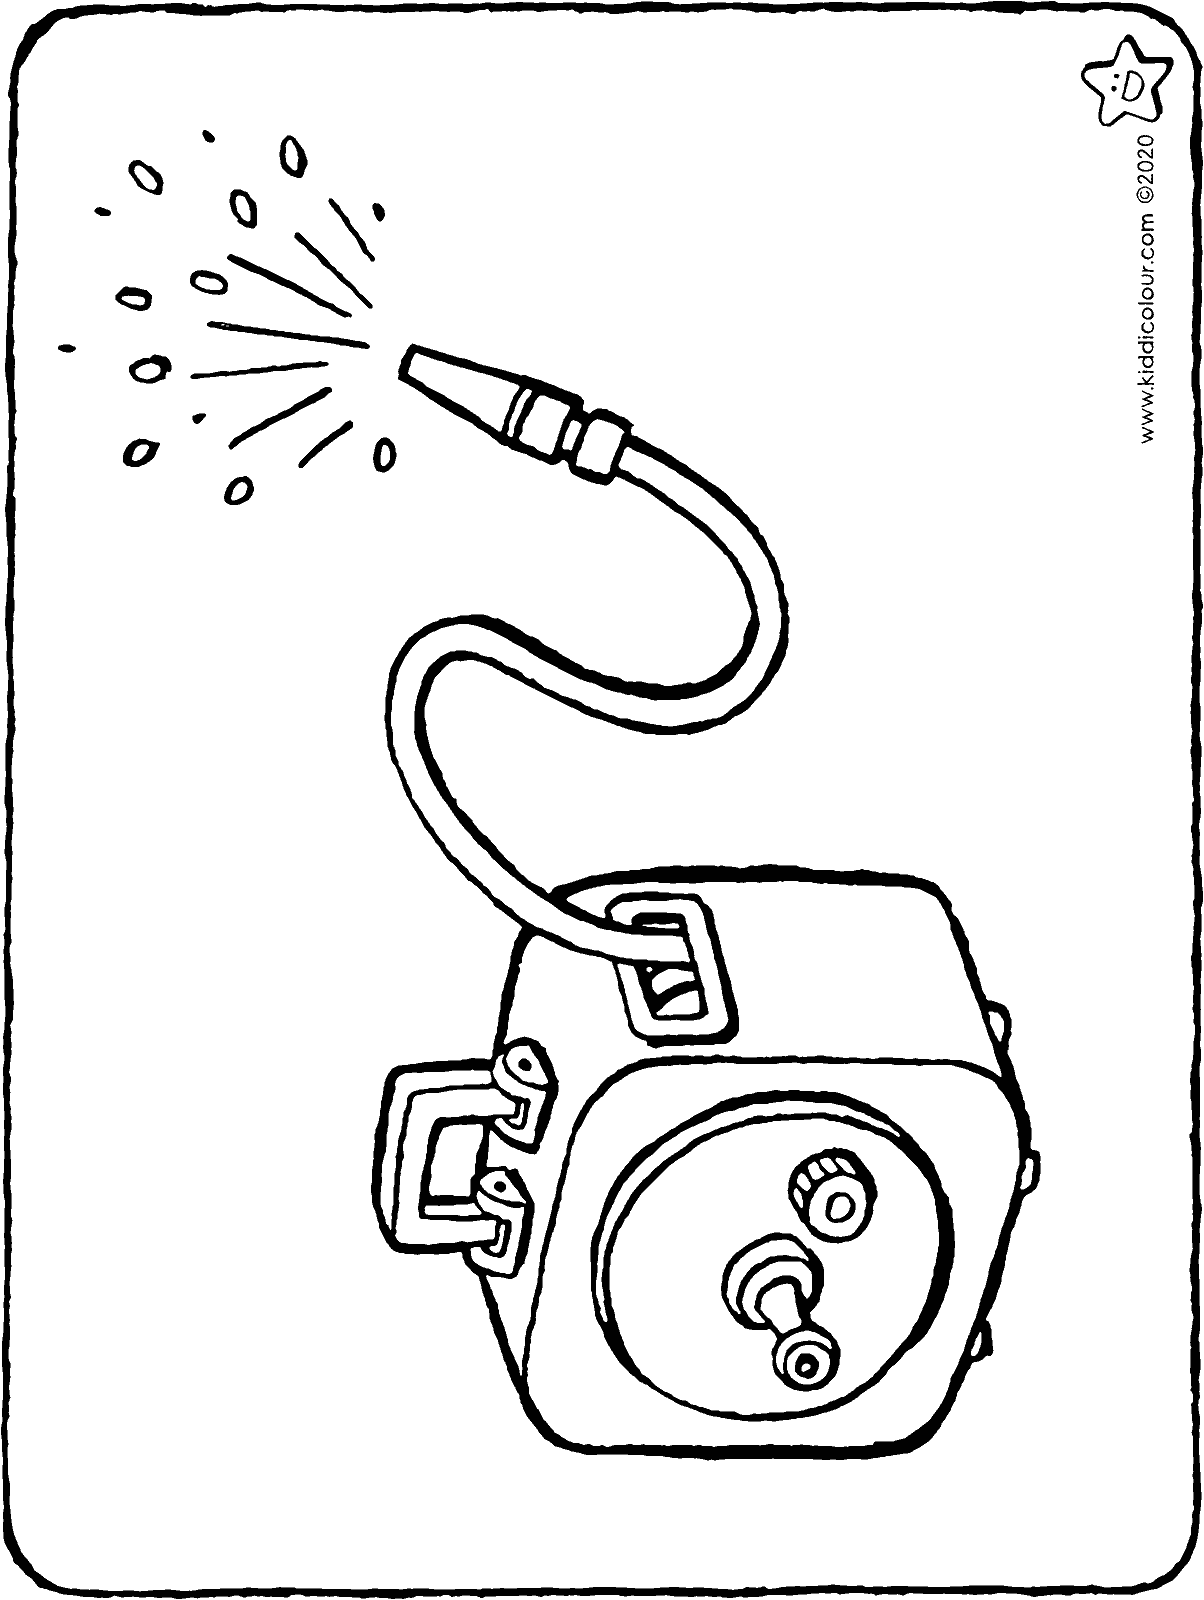 garden hose colouring page drawing picture 01H